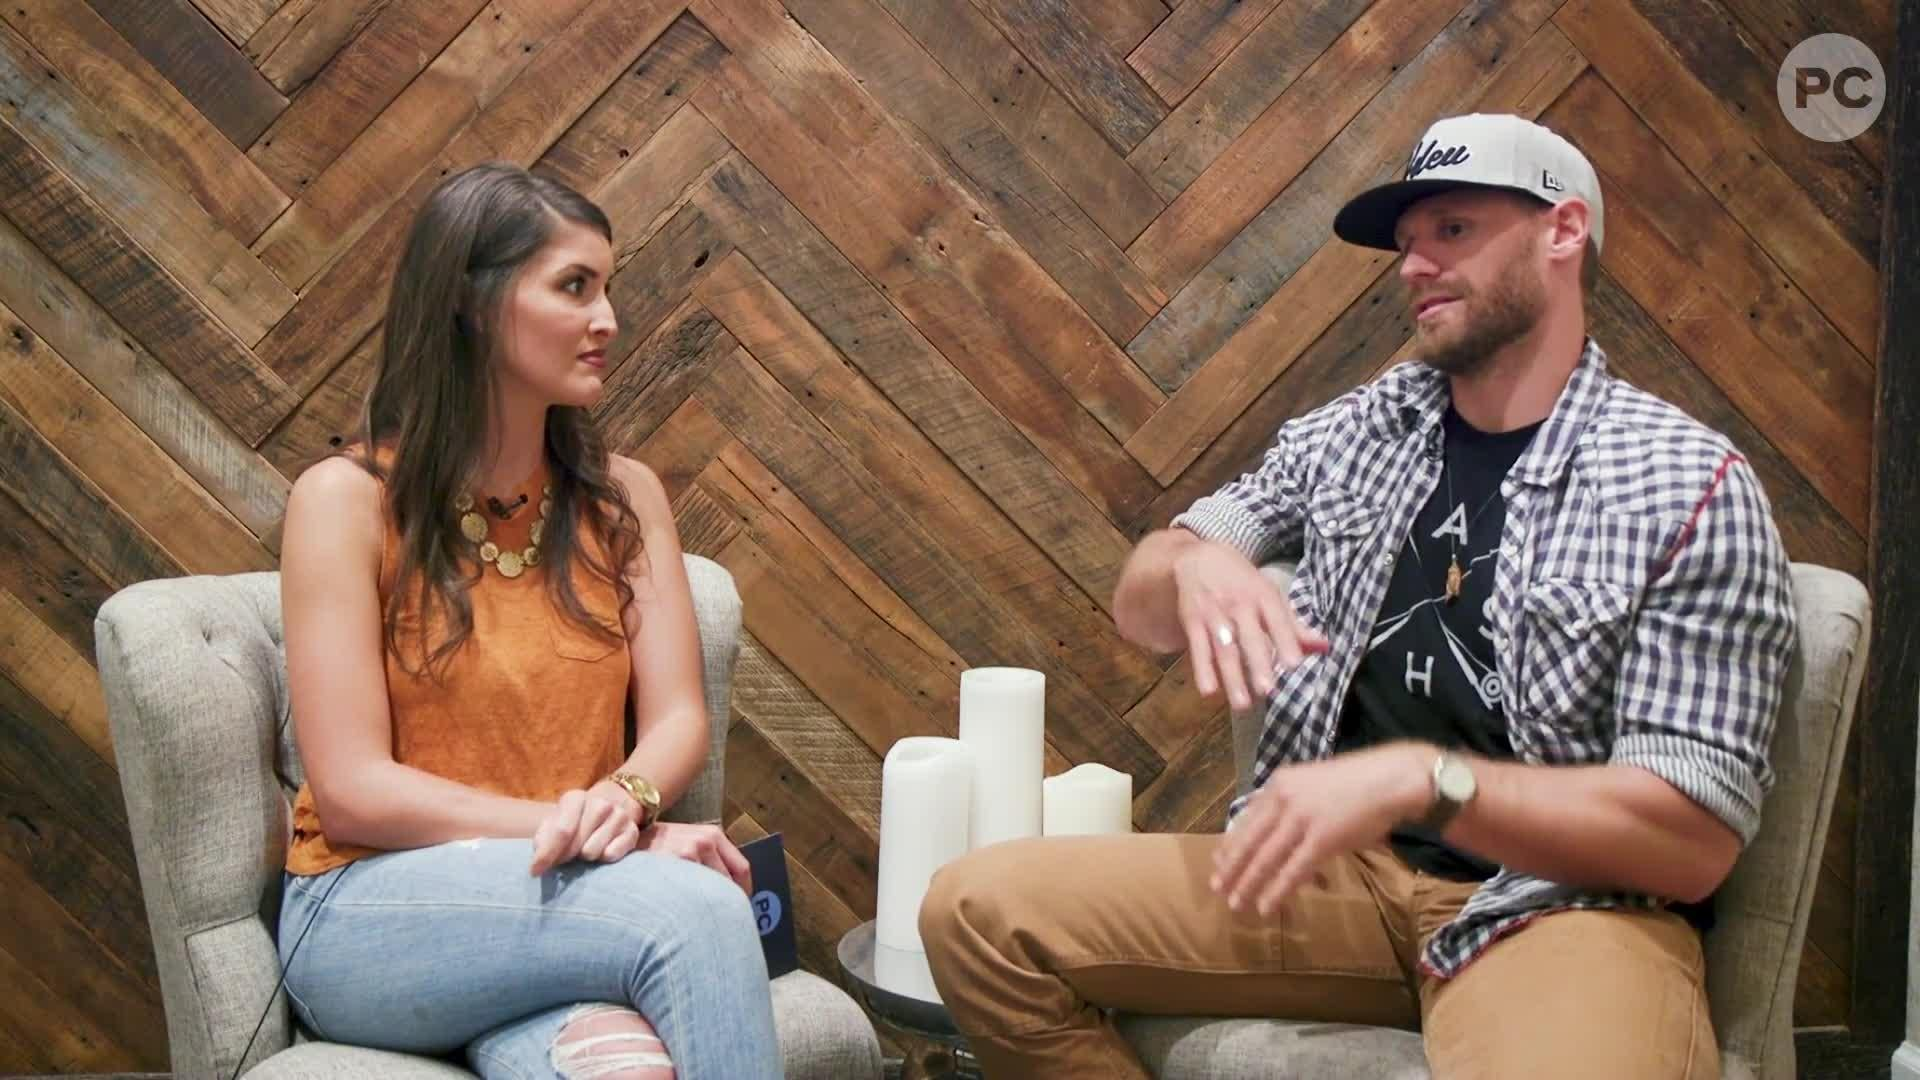 Chase Rice - PopCulture Exclusive Interview screen capture